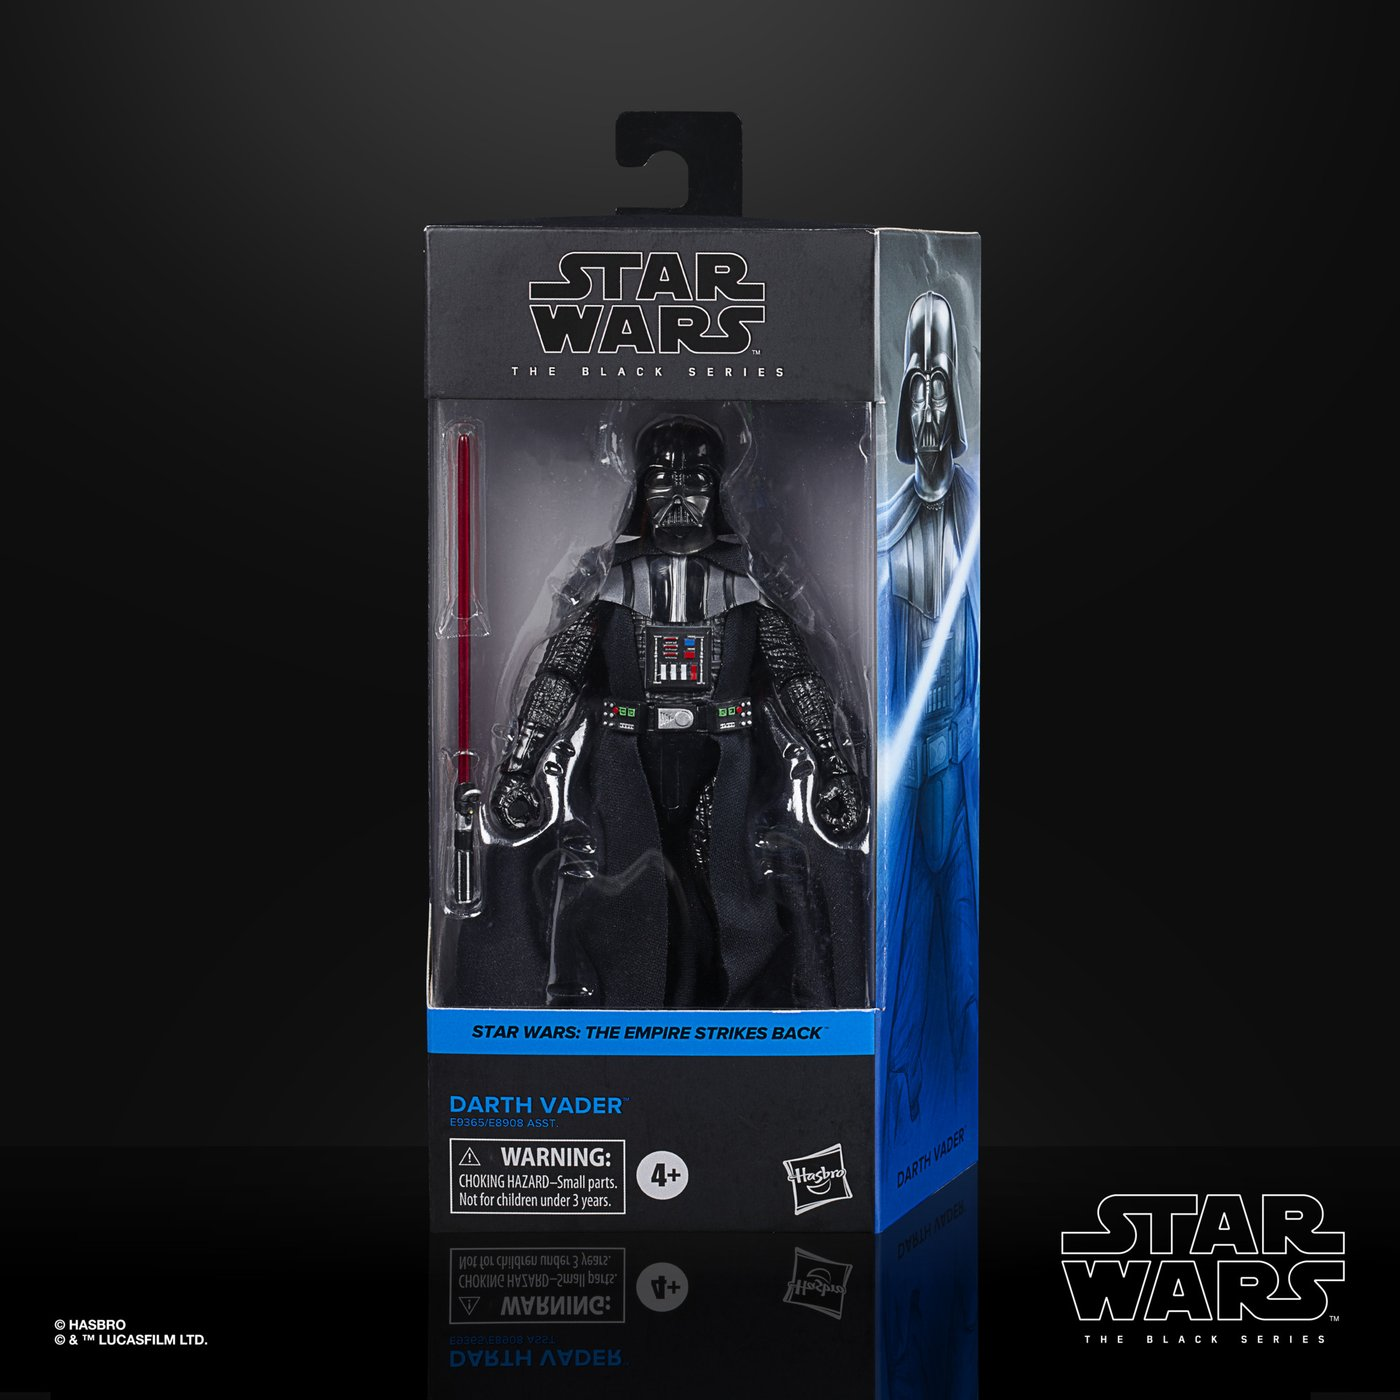 Star Wars Black Series - New Packaging Debuts with Latest ...